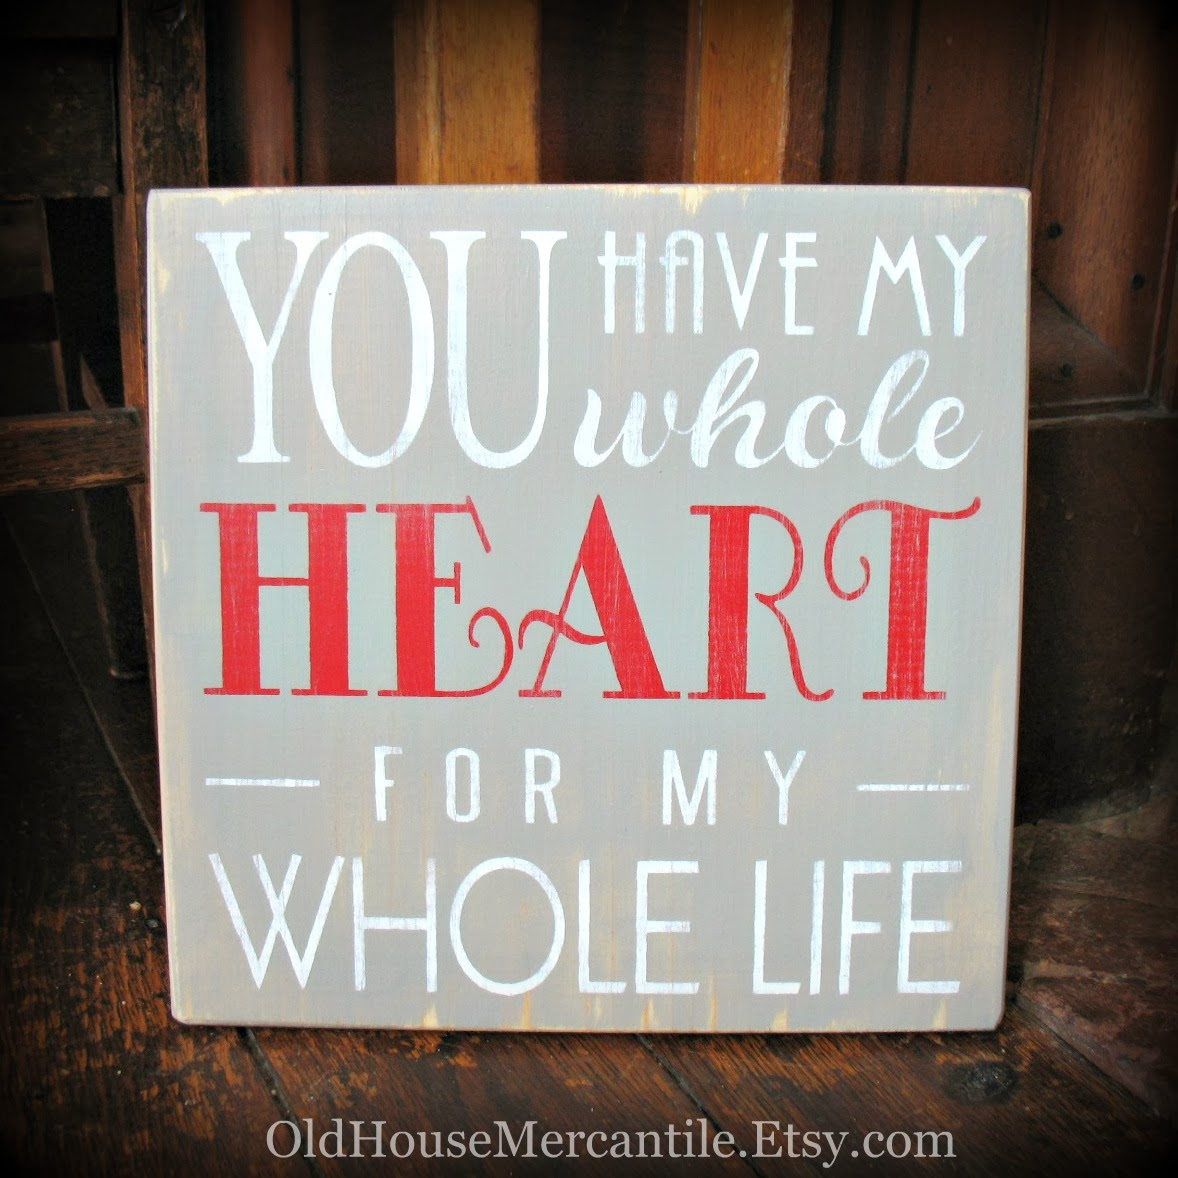 https://www.etsy.com/listing/176305518/you-have-my-whole-heart-for-my-whole?